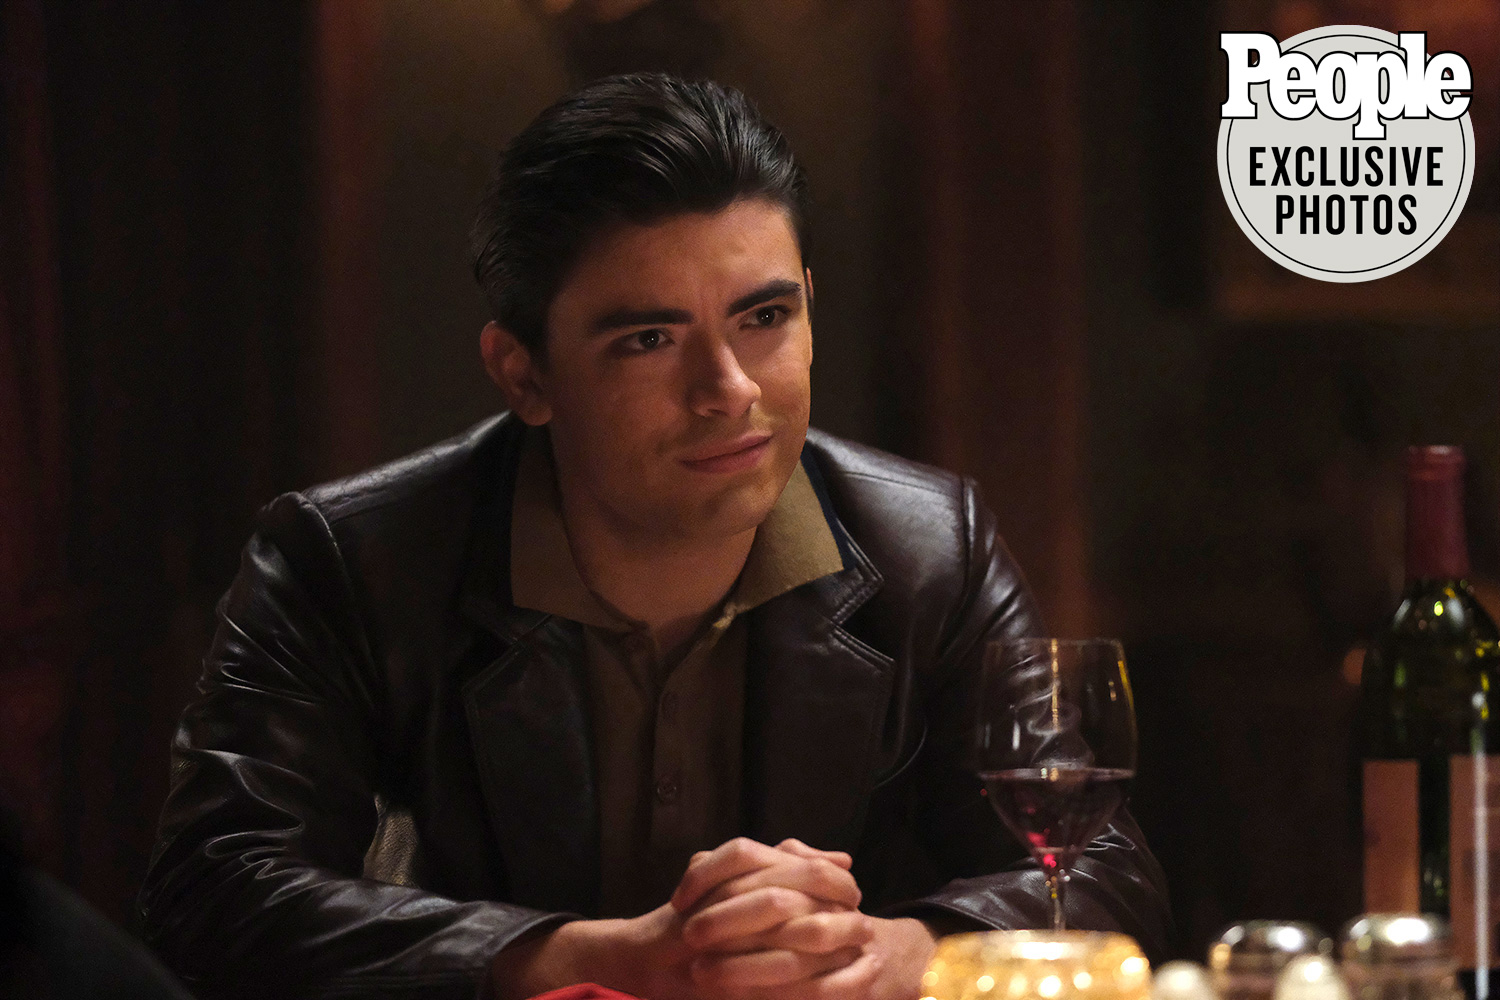 Michael Consuelos as Young Hiram in Riverdale